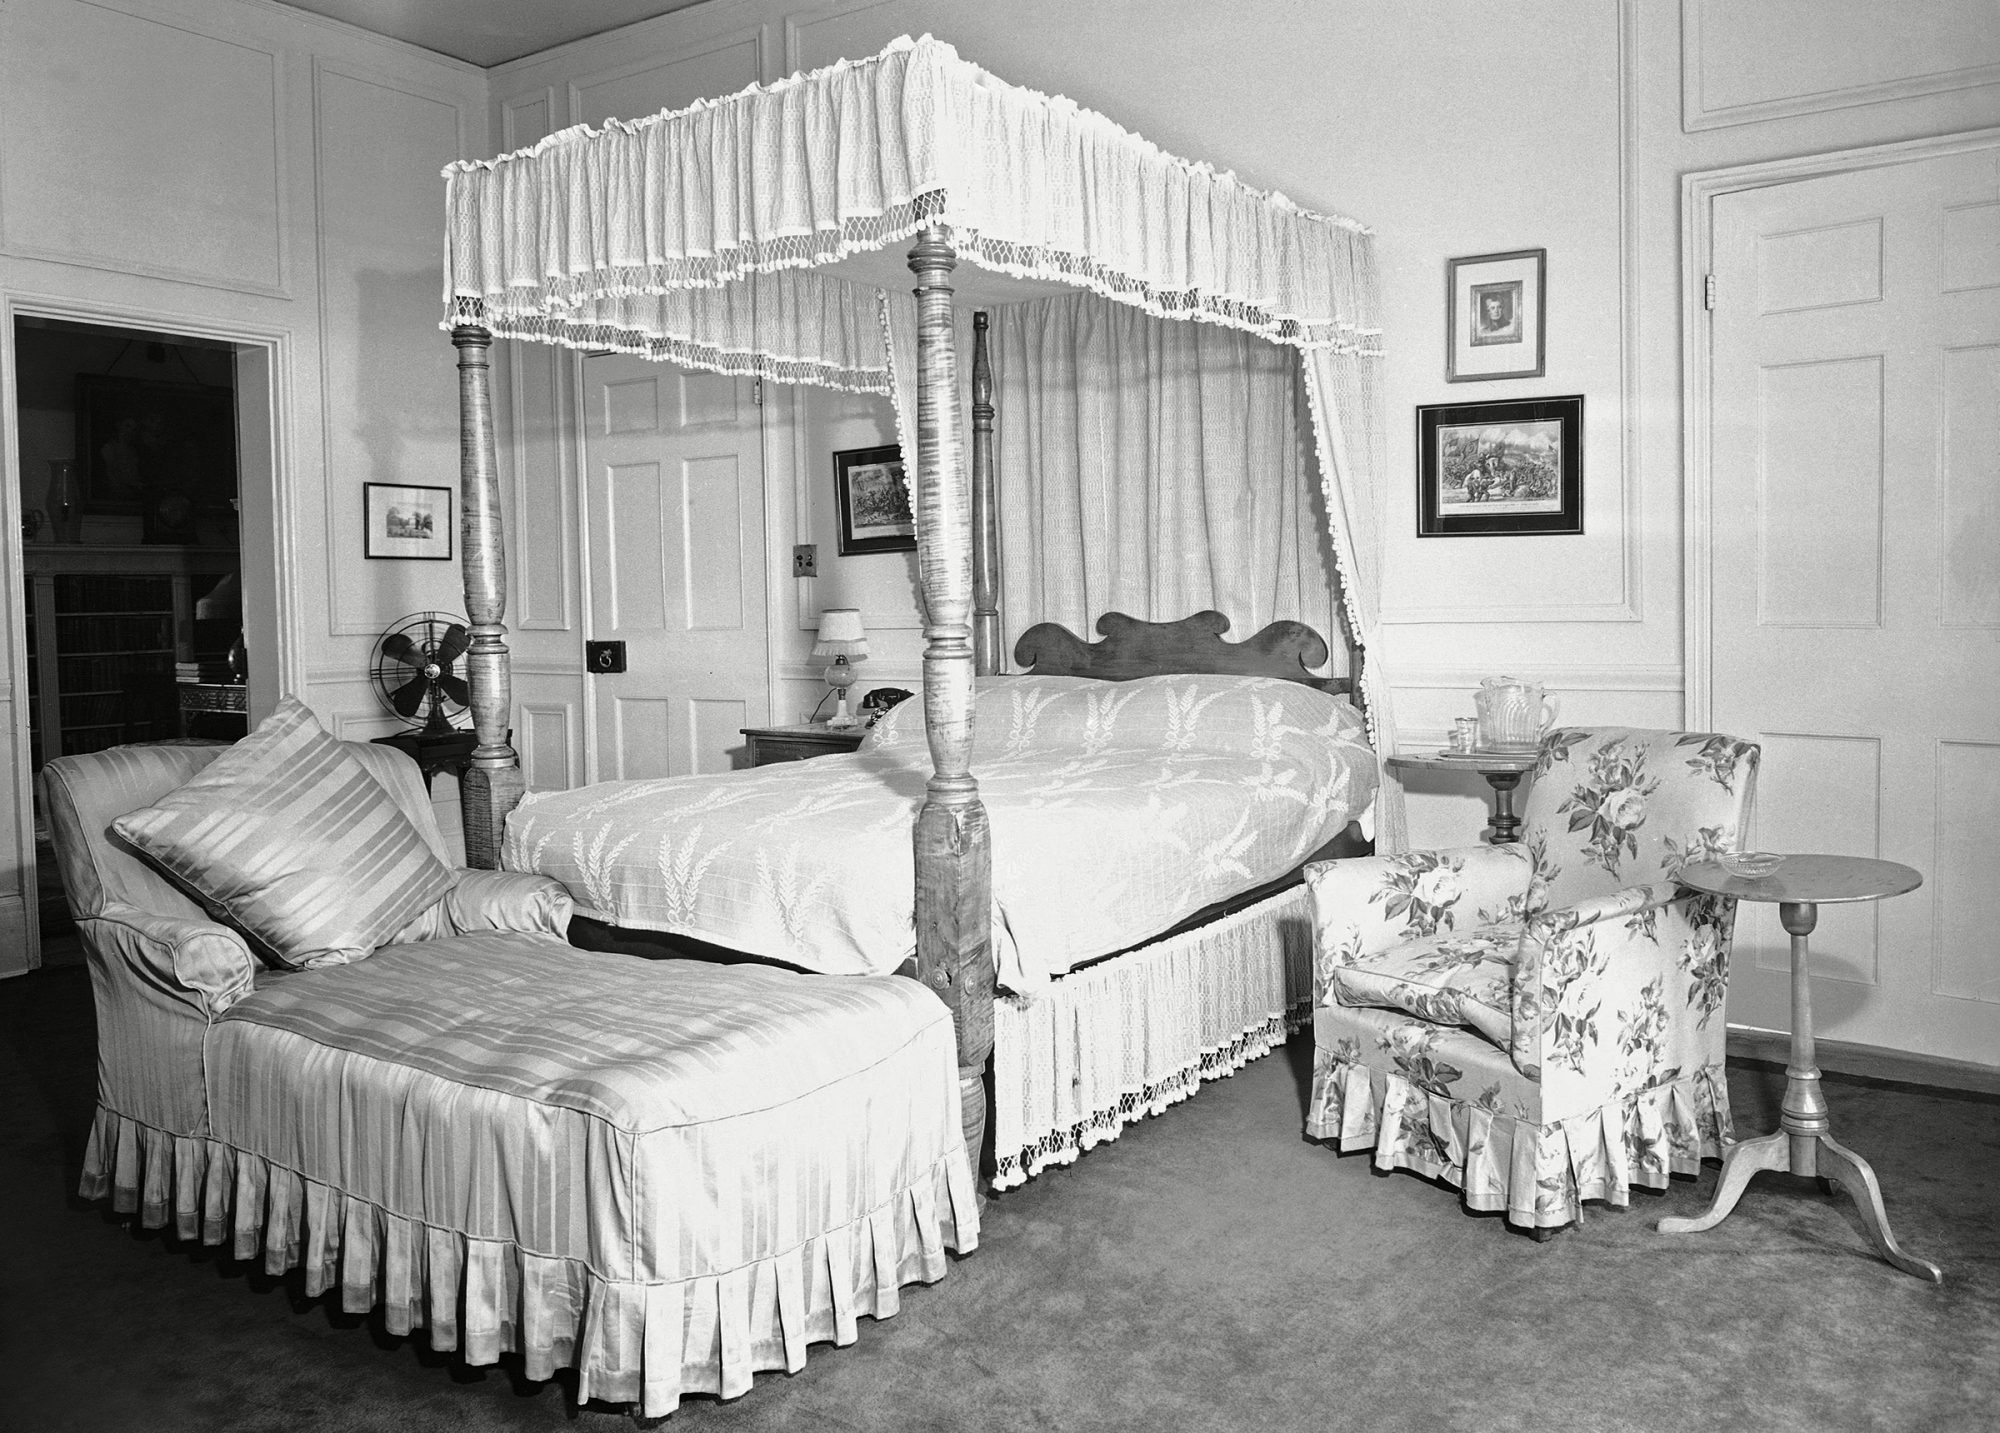 This is the master bedroom at Blair House, where royal visitors sleep in Washington on Blair House 1942, Washington, USA